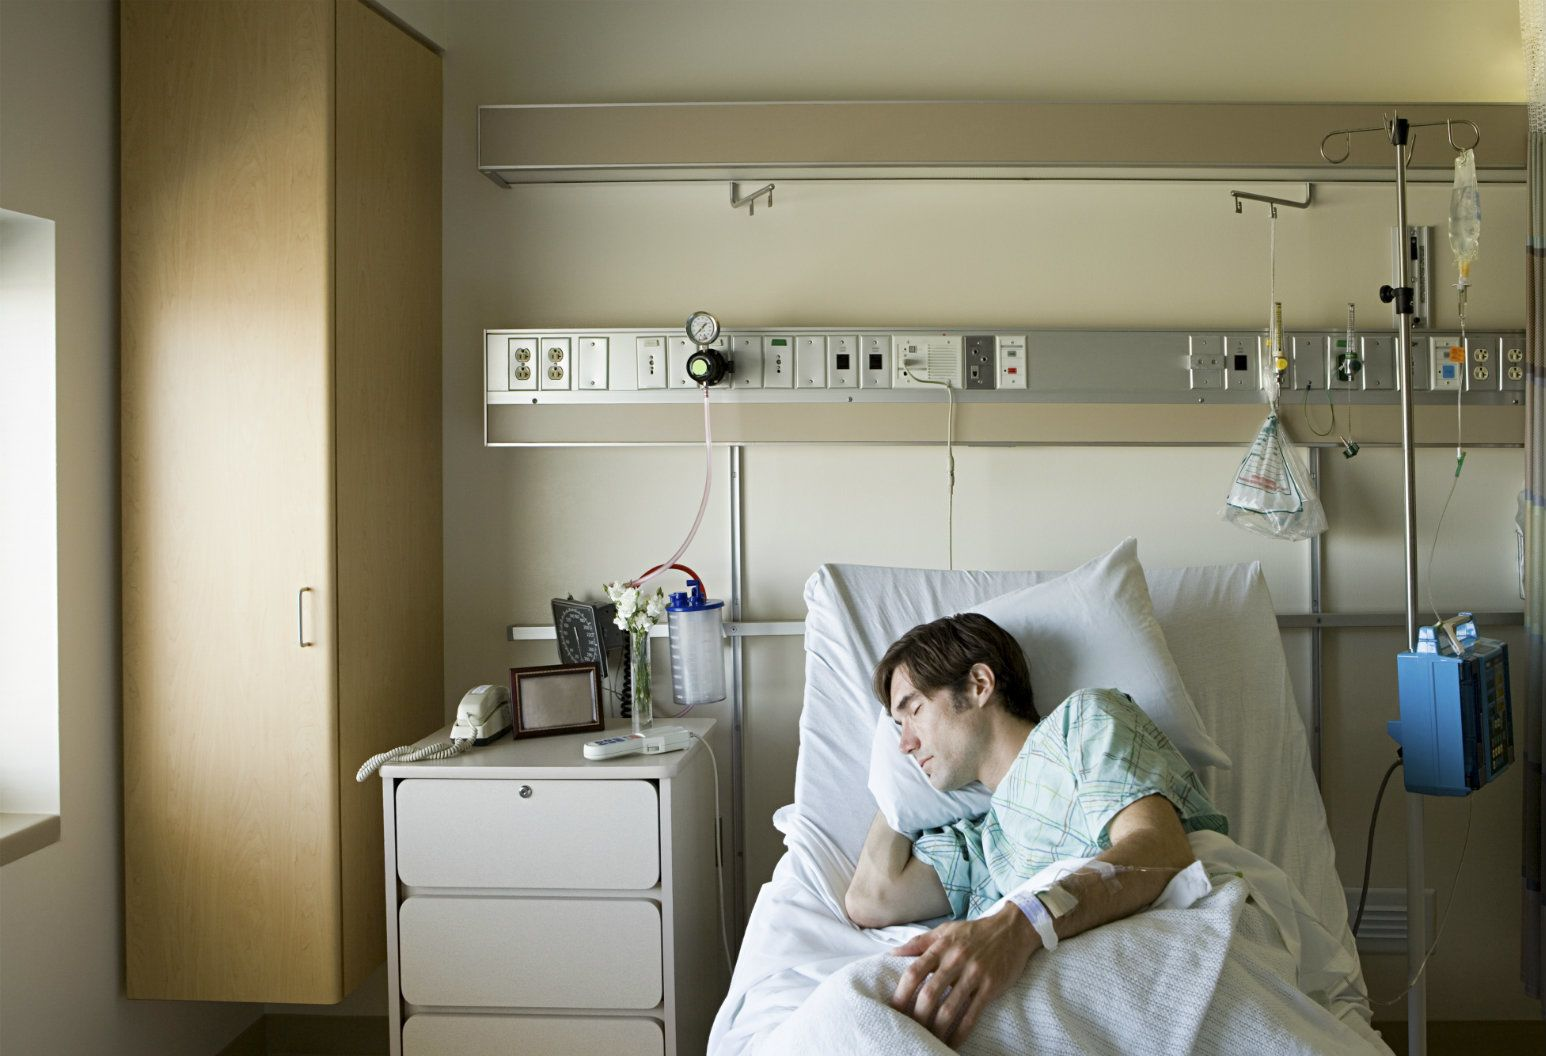 A man peacefully sleeps on his side in a hospital bed. His left arm is tucked behind his pillow, while his right arm is outstretched along his side. Light streams in from a nearby window. Northwell Health hospitals are rolling out new quiet hours and interior design changes to create a more restful patient experience.